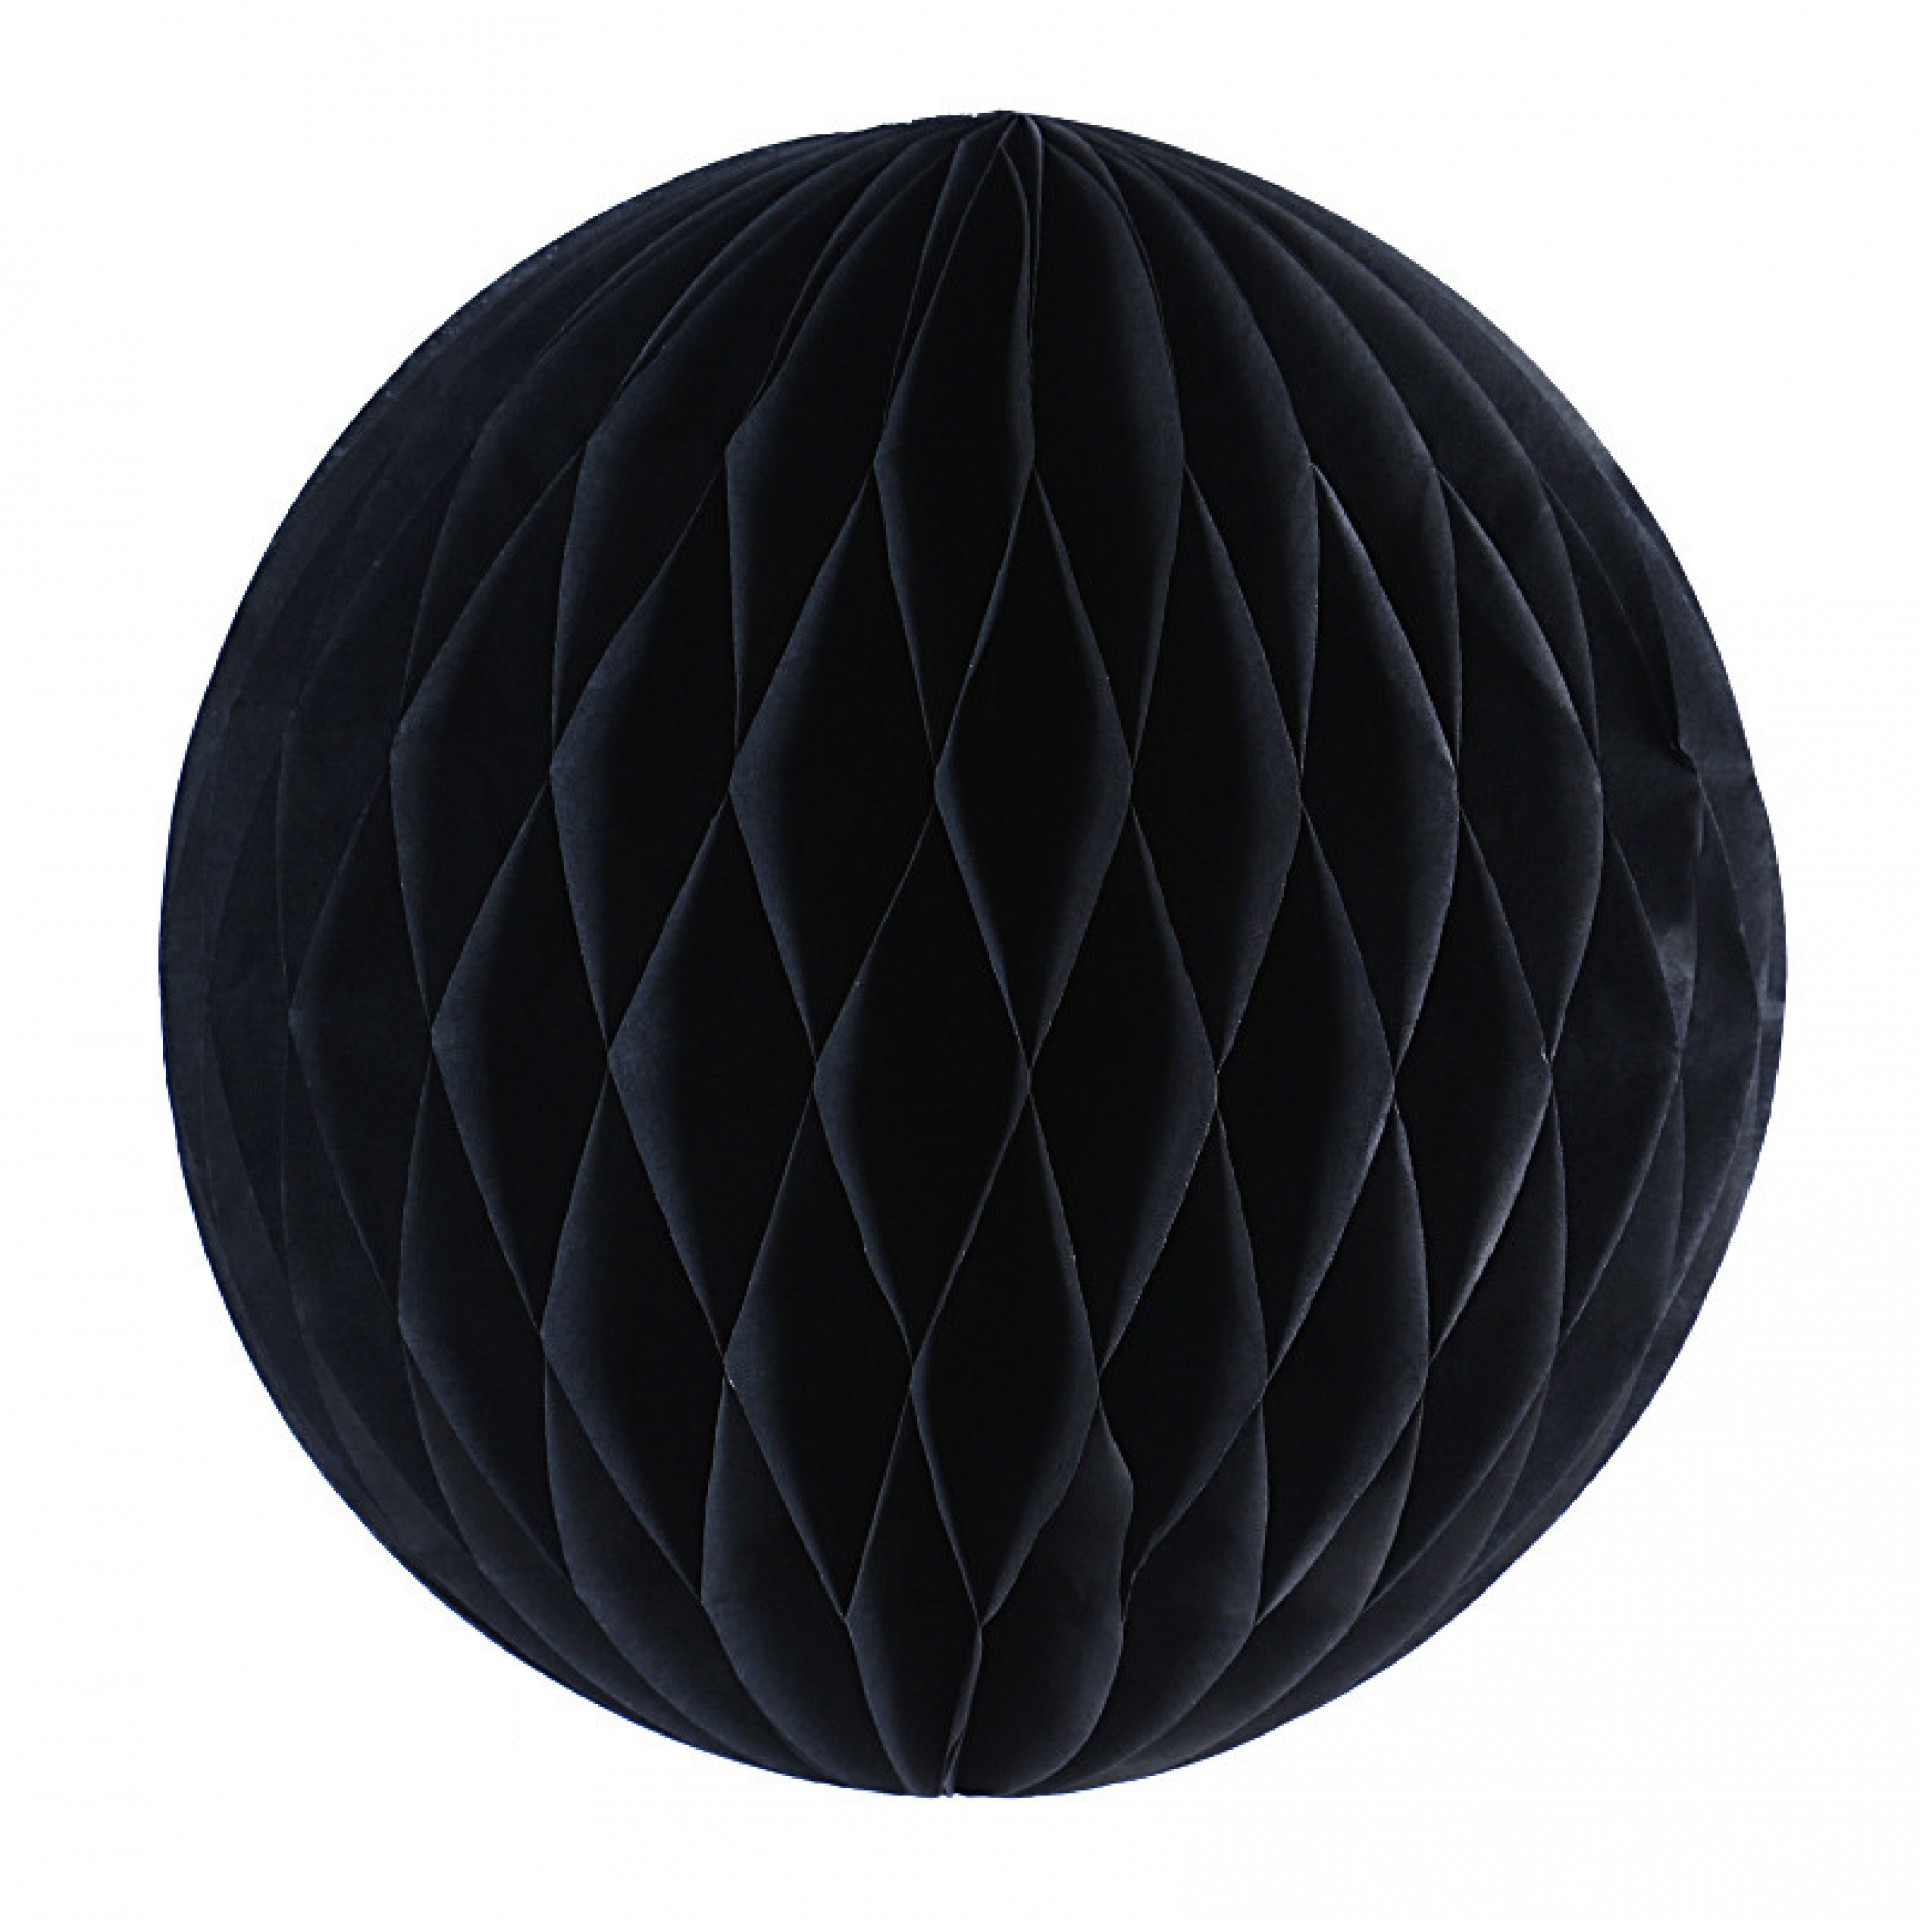 Honey Comb 20 cm - Preto